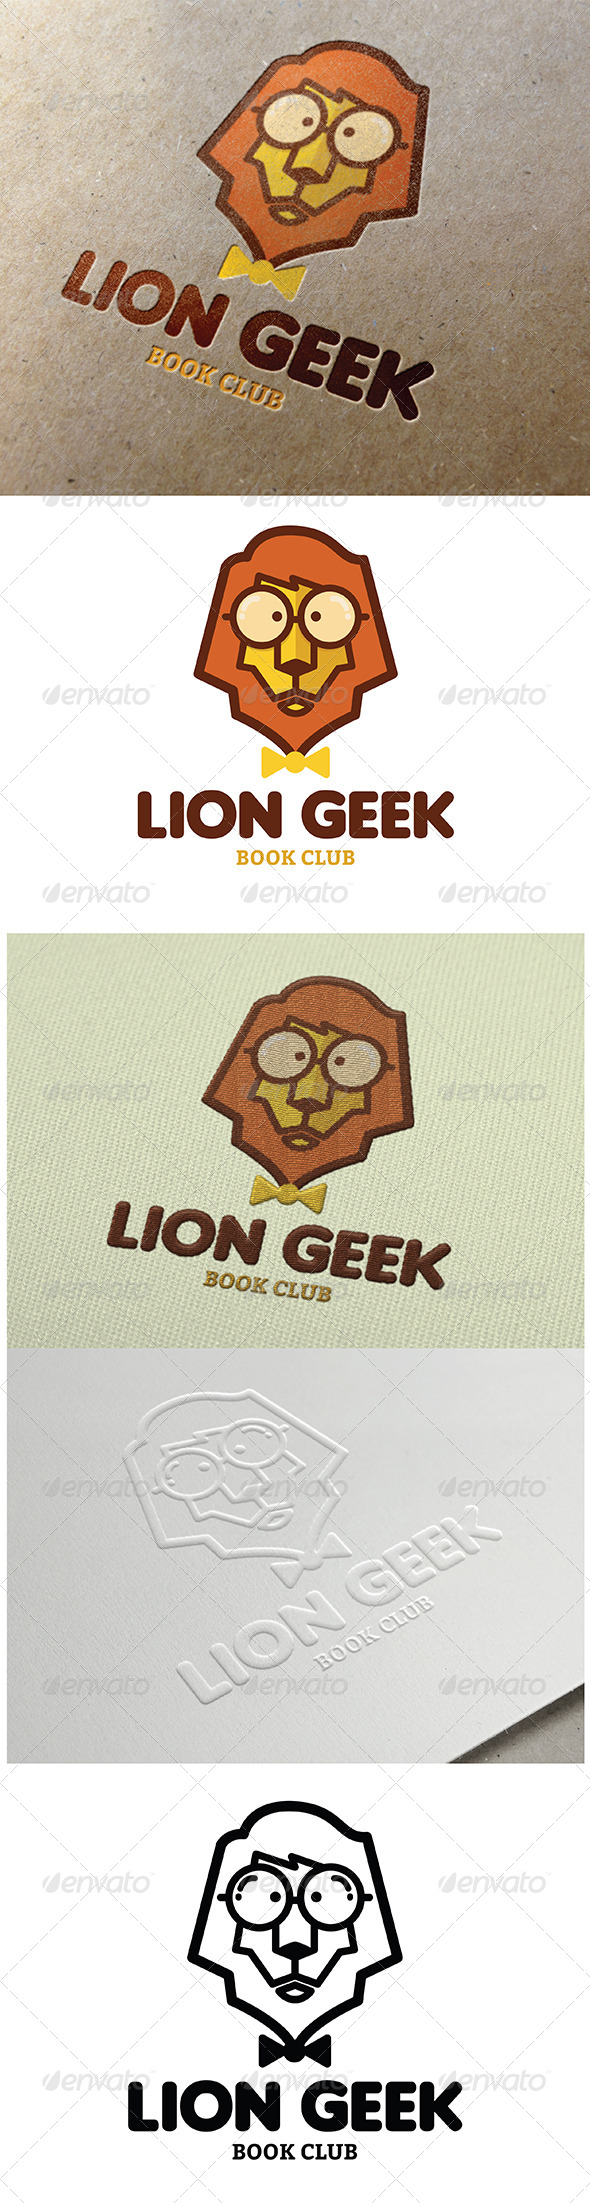 GraphicRiver Lion Geek Logo 8094108